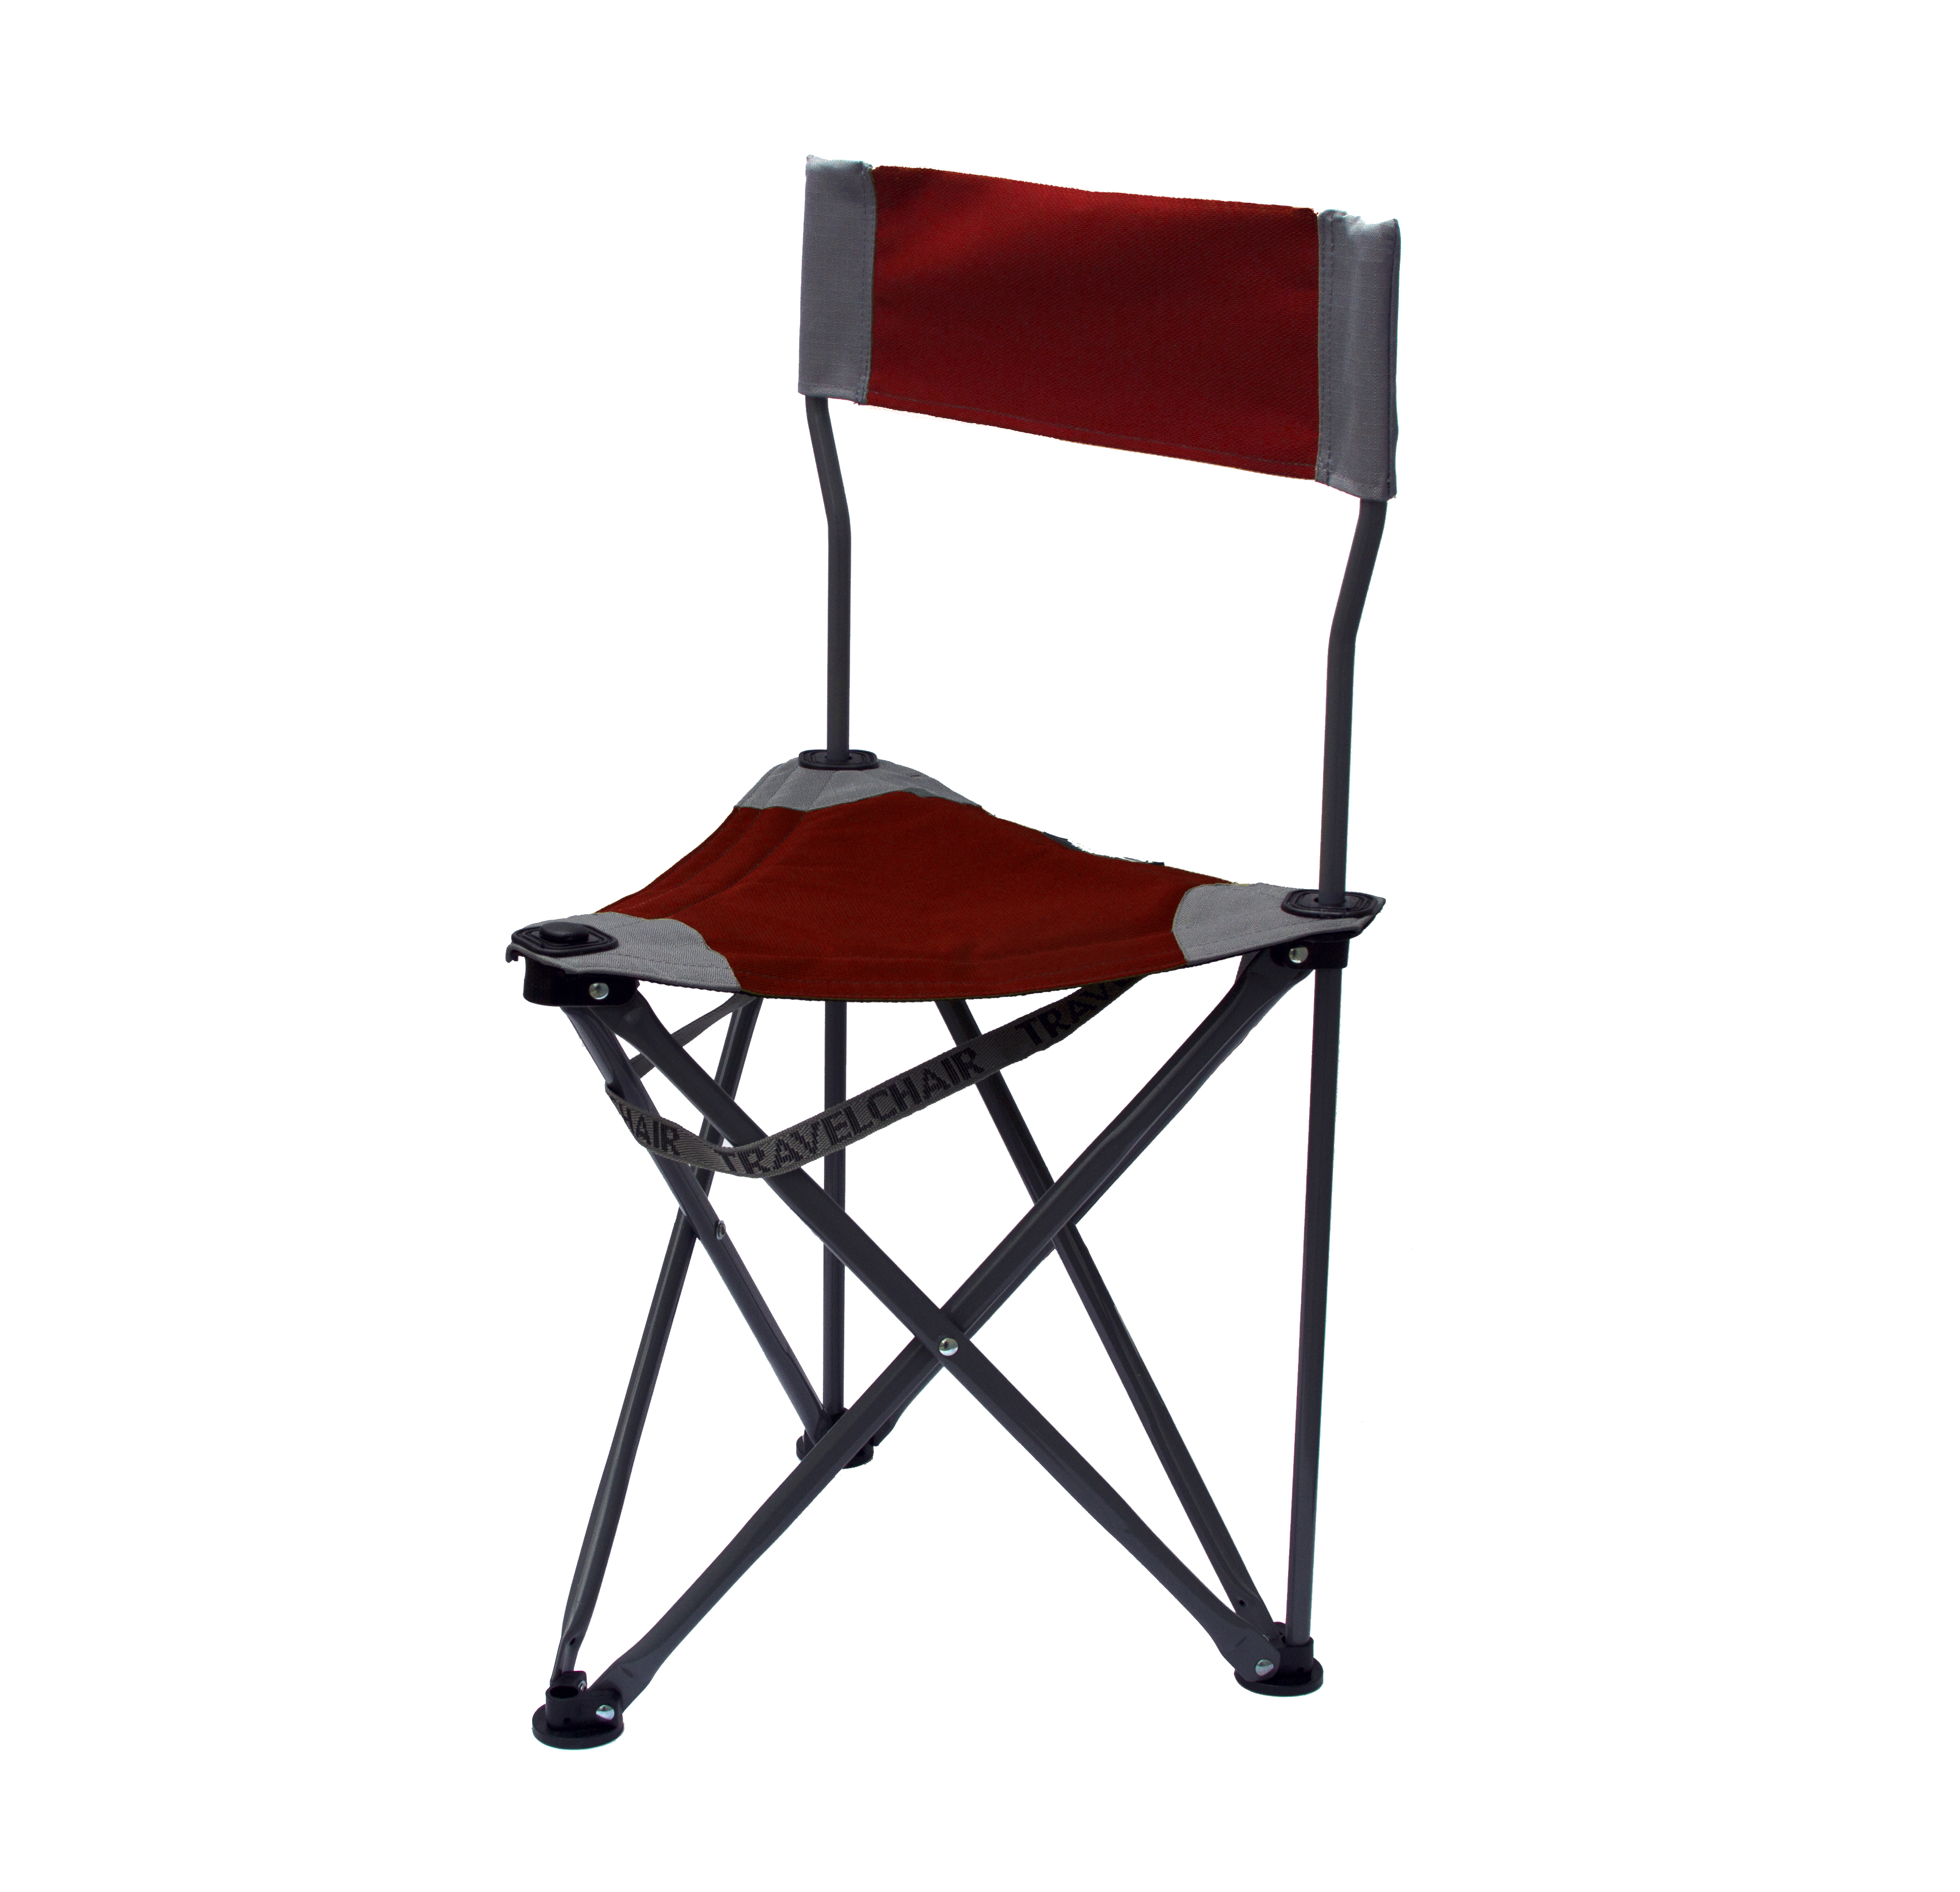 folding chair outlet domore office travel ultimate slacker 2 red